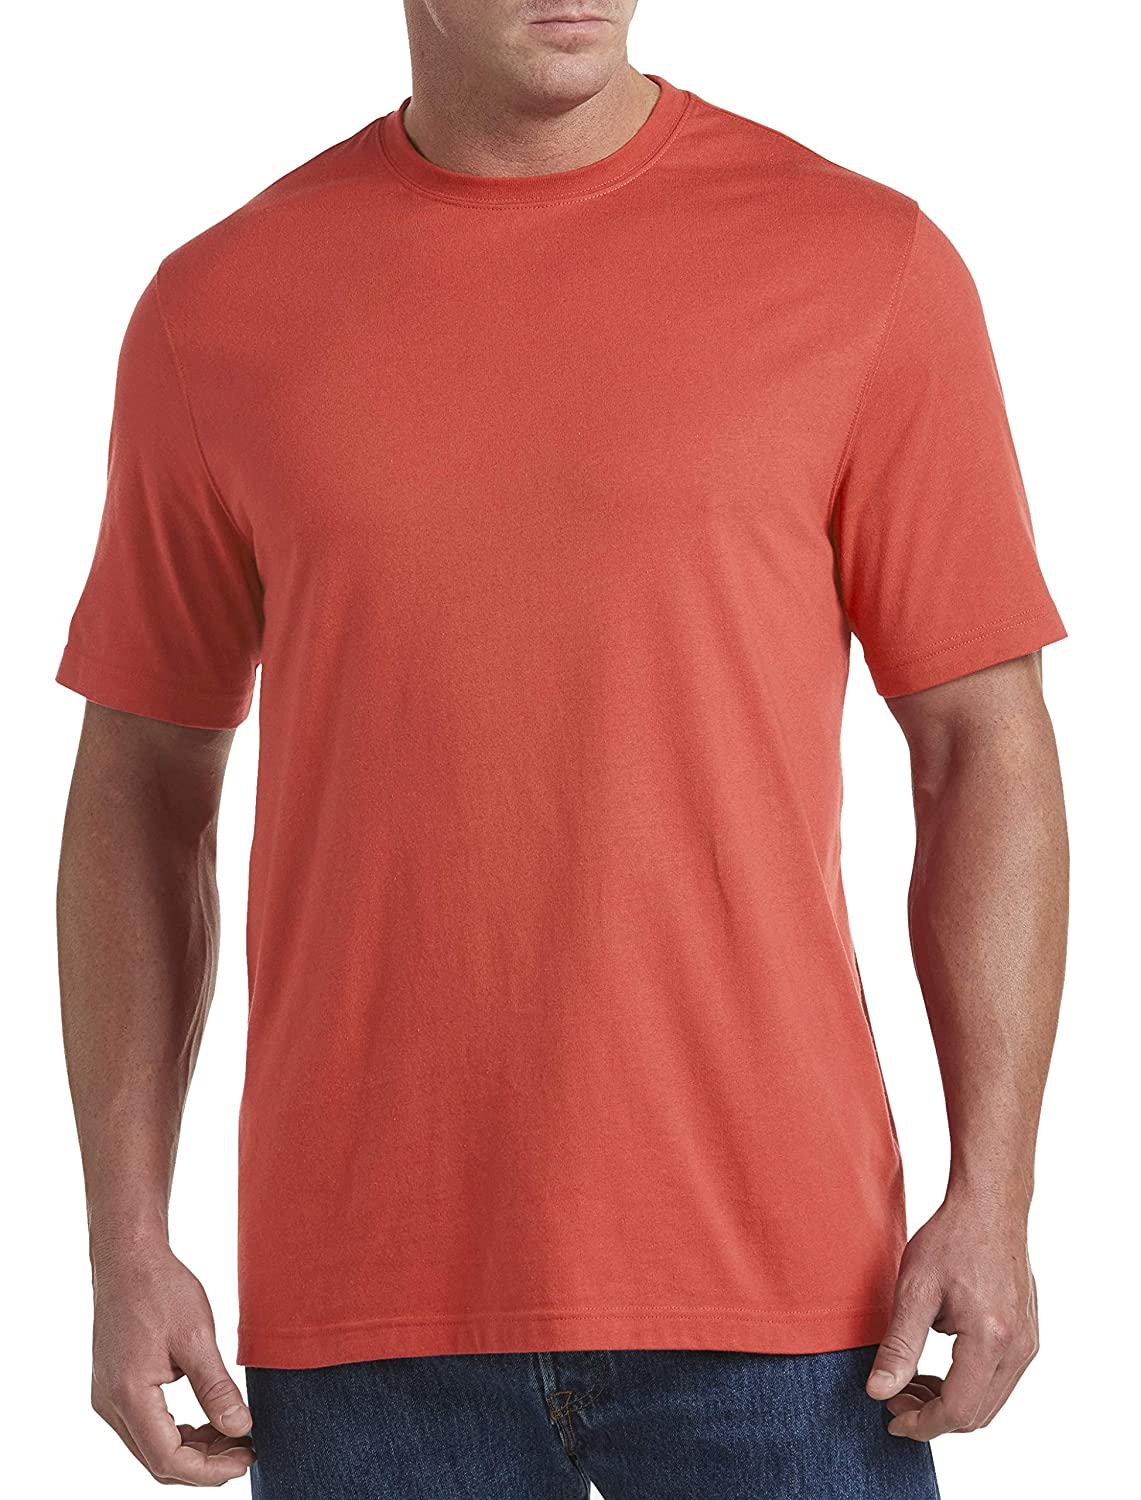 Harbor Bay by DXL Big and Tall Wicking Jersey No-Pocket Tee